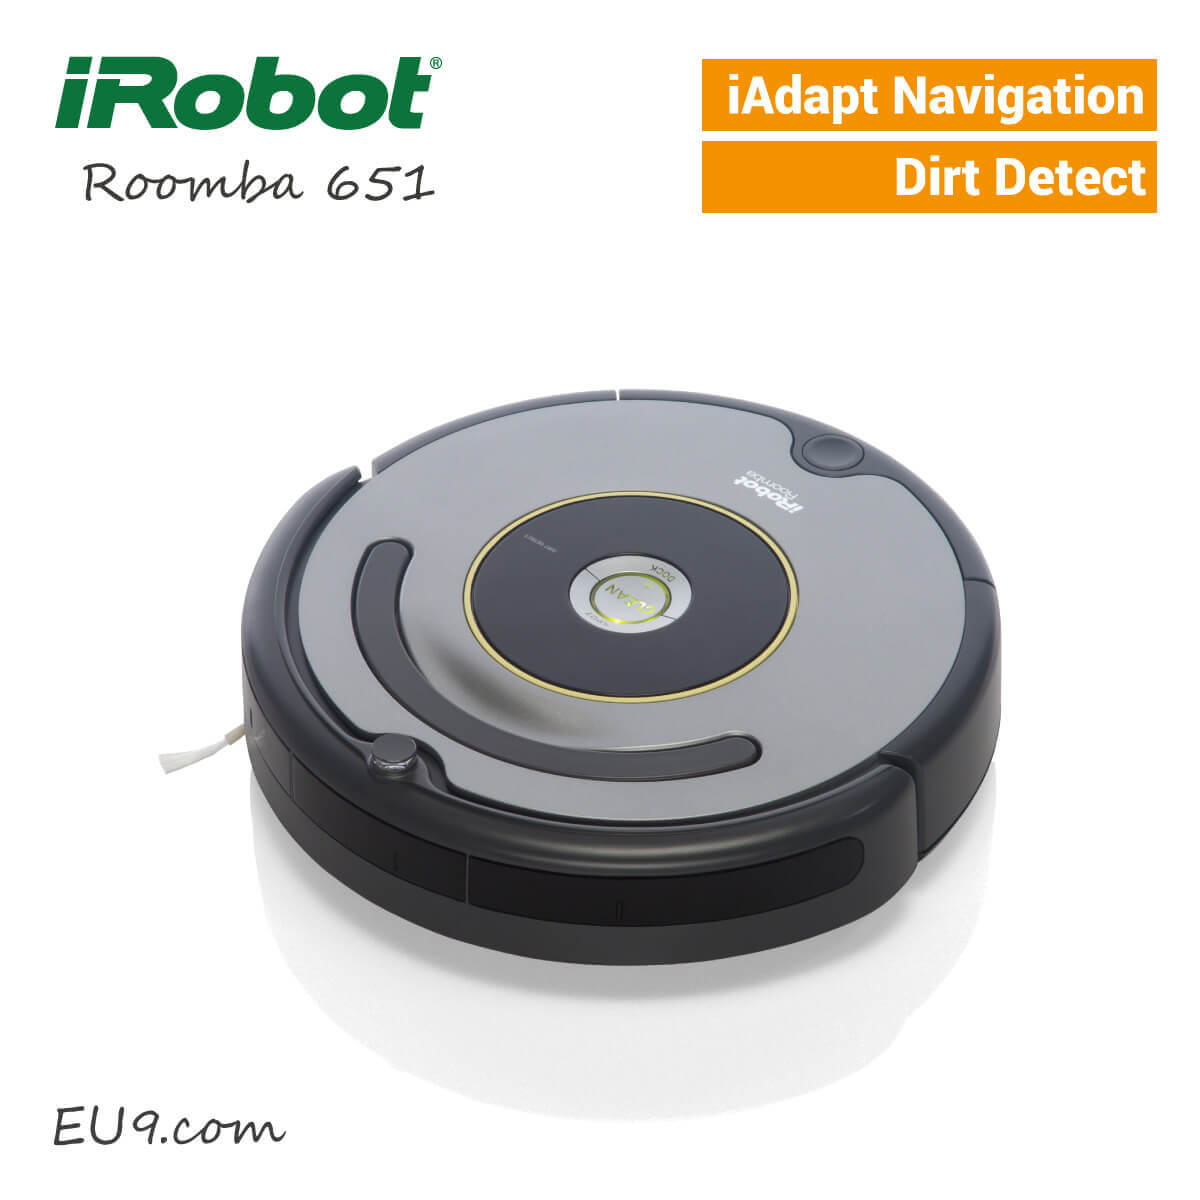 irobot roomba 651 saugroboter eu9 robotics. Black Bedroom Furniture Sets. Home Design Ideas